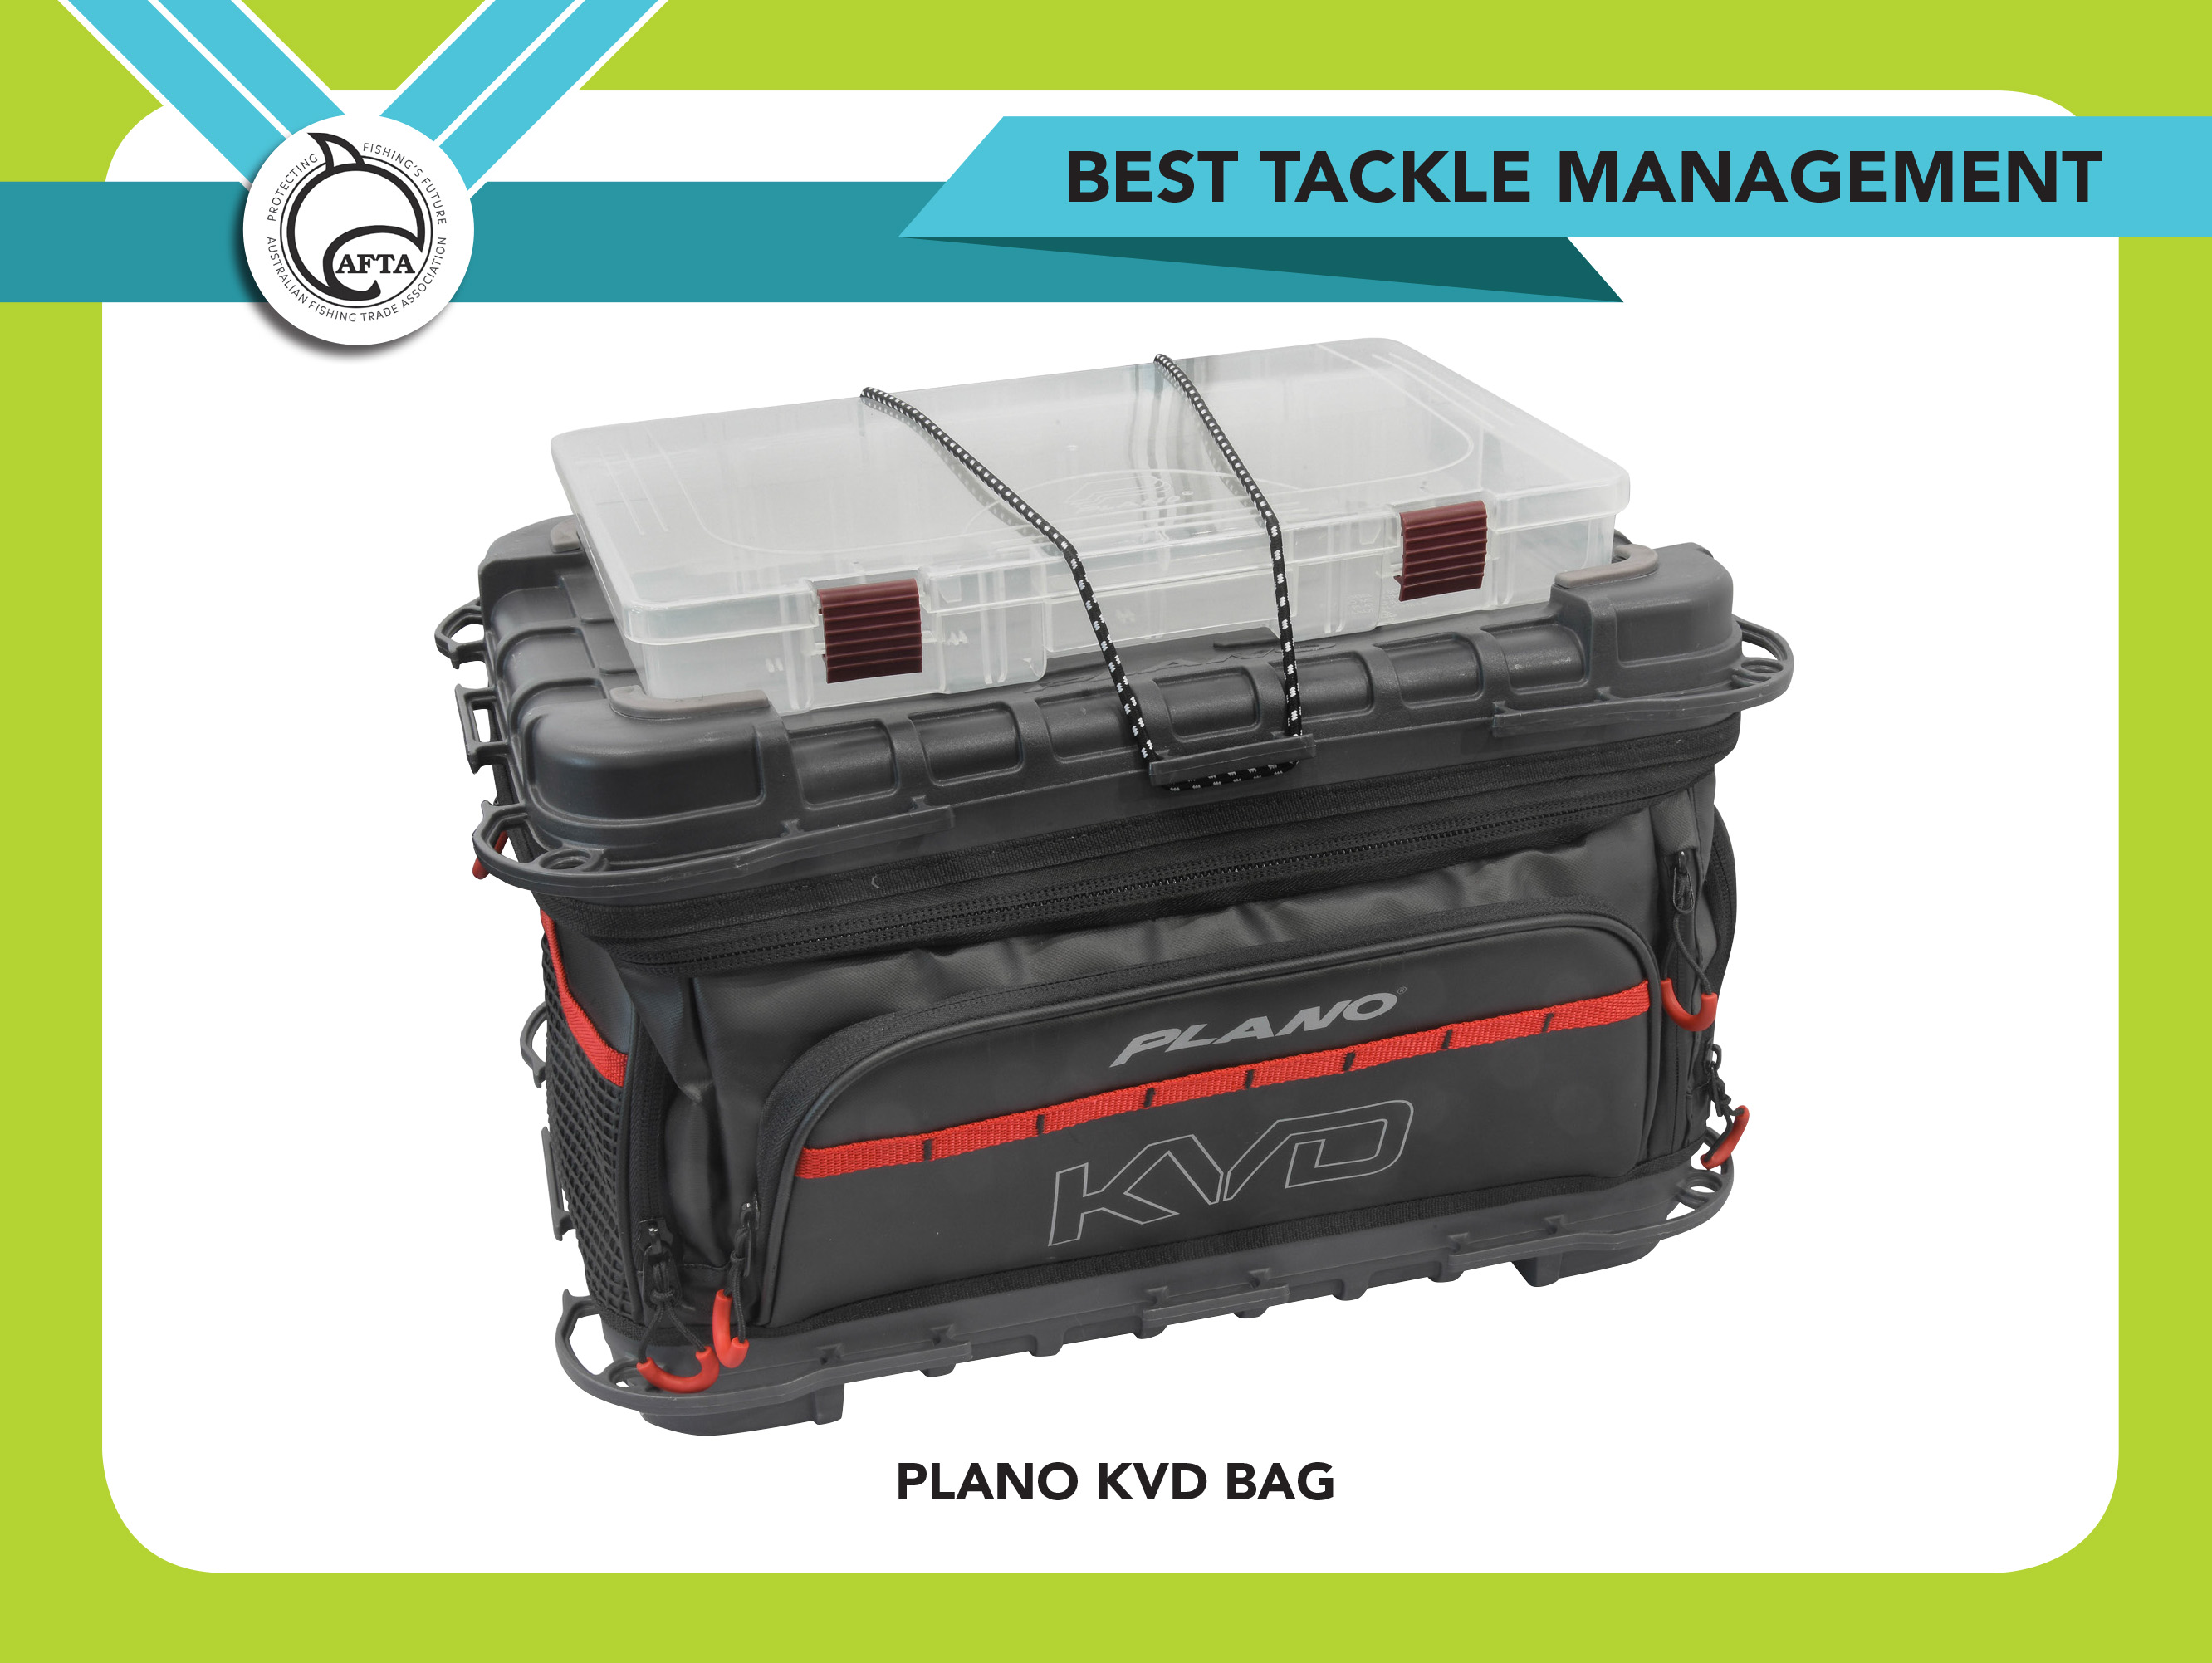 BestTackleManagement